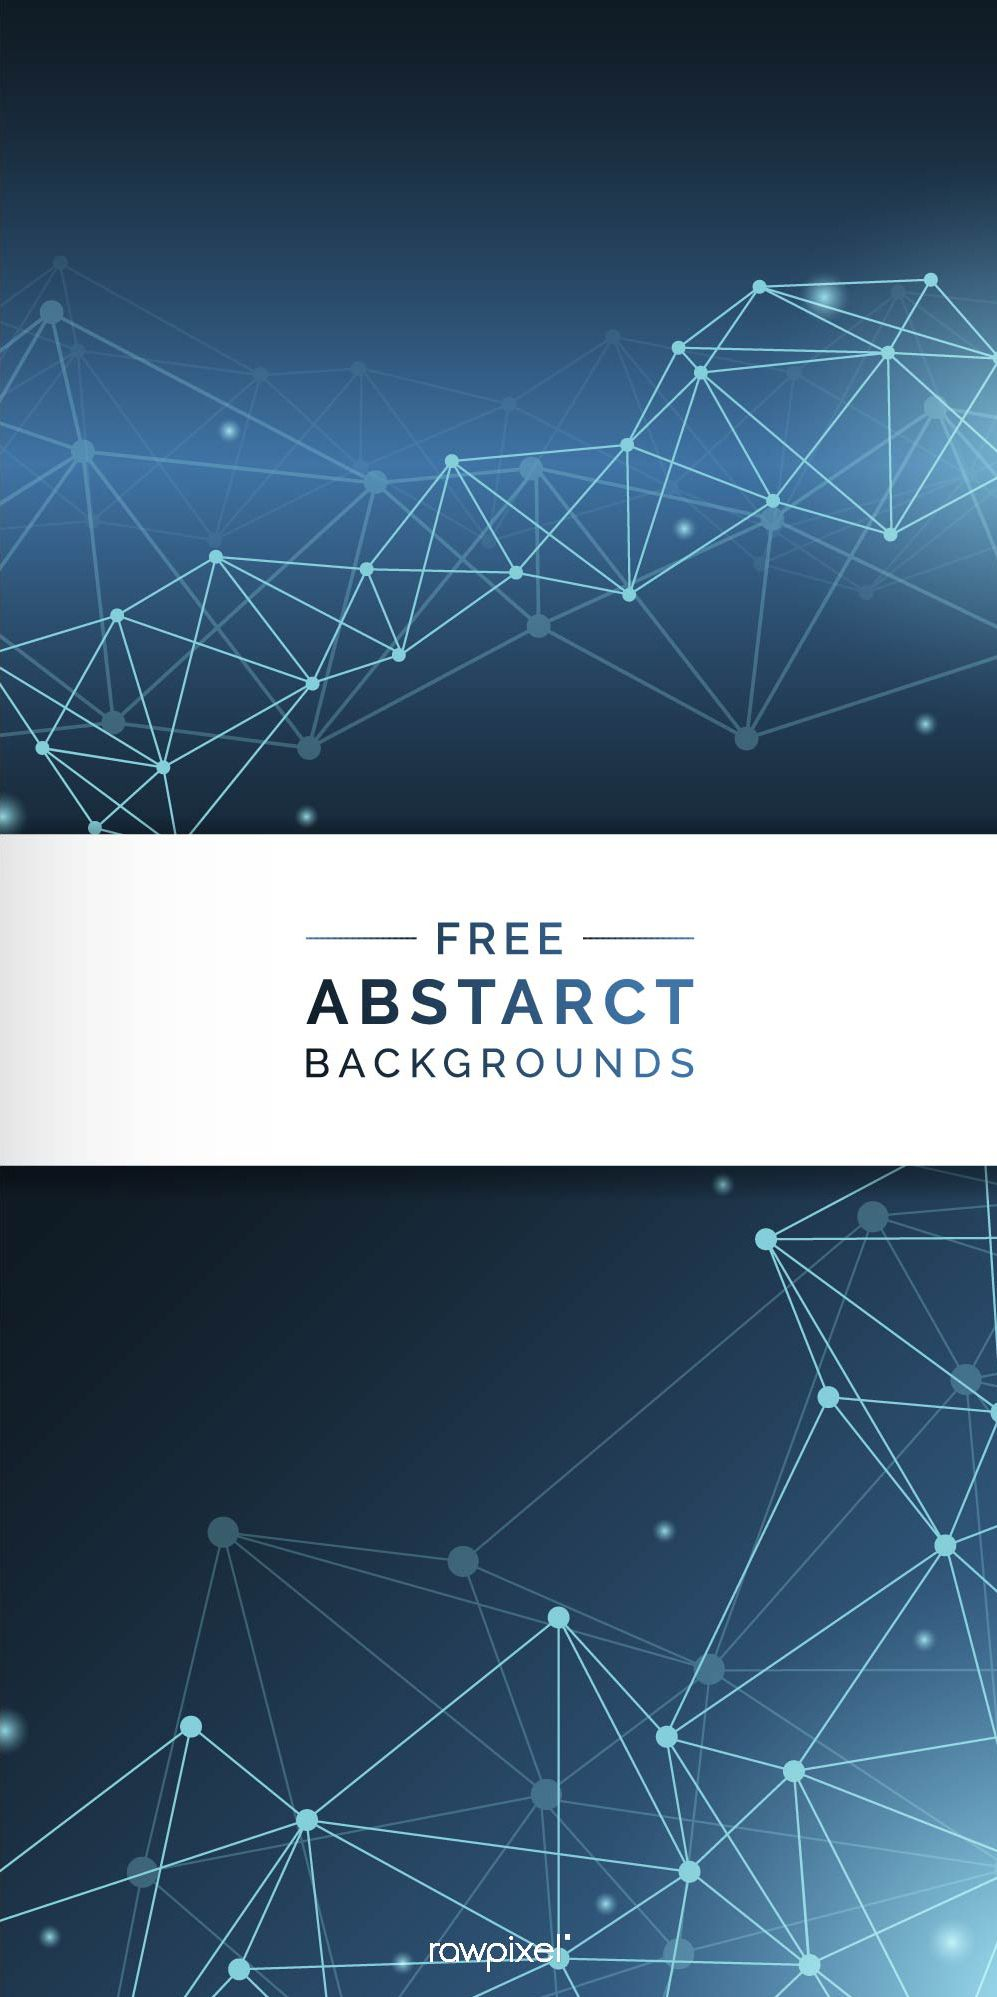 Download Free And Premium Royalty Free Vectors Of Abstract Backgrounds At Rawpixel C Geometric Pattern Background Web Design Resources Background Design Vector